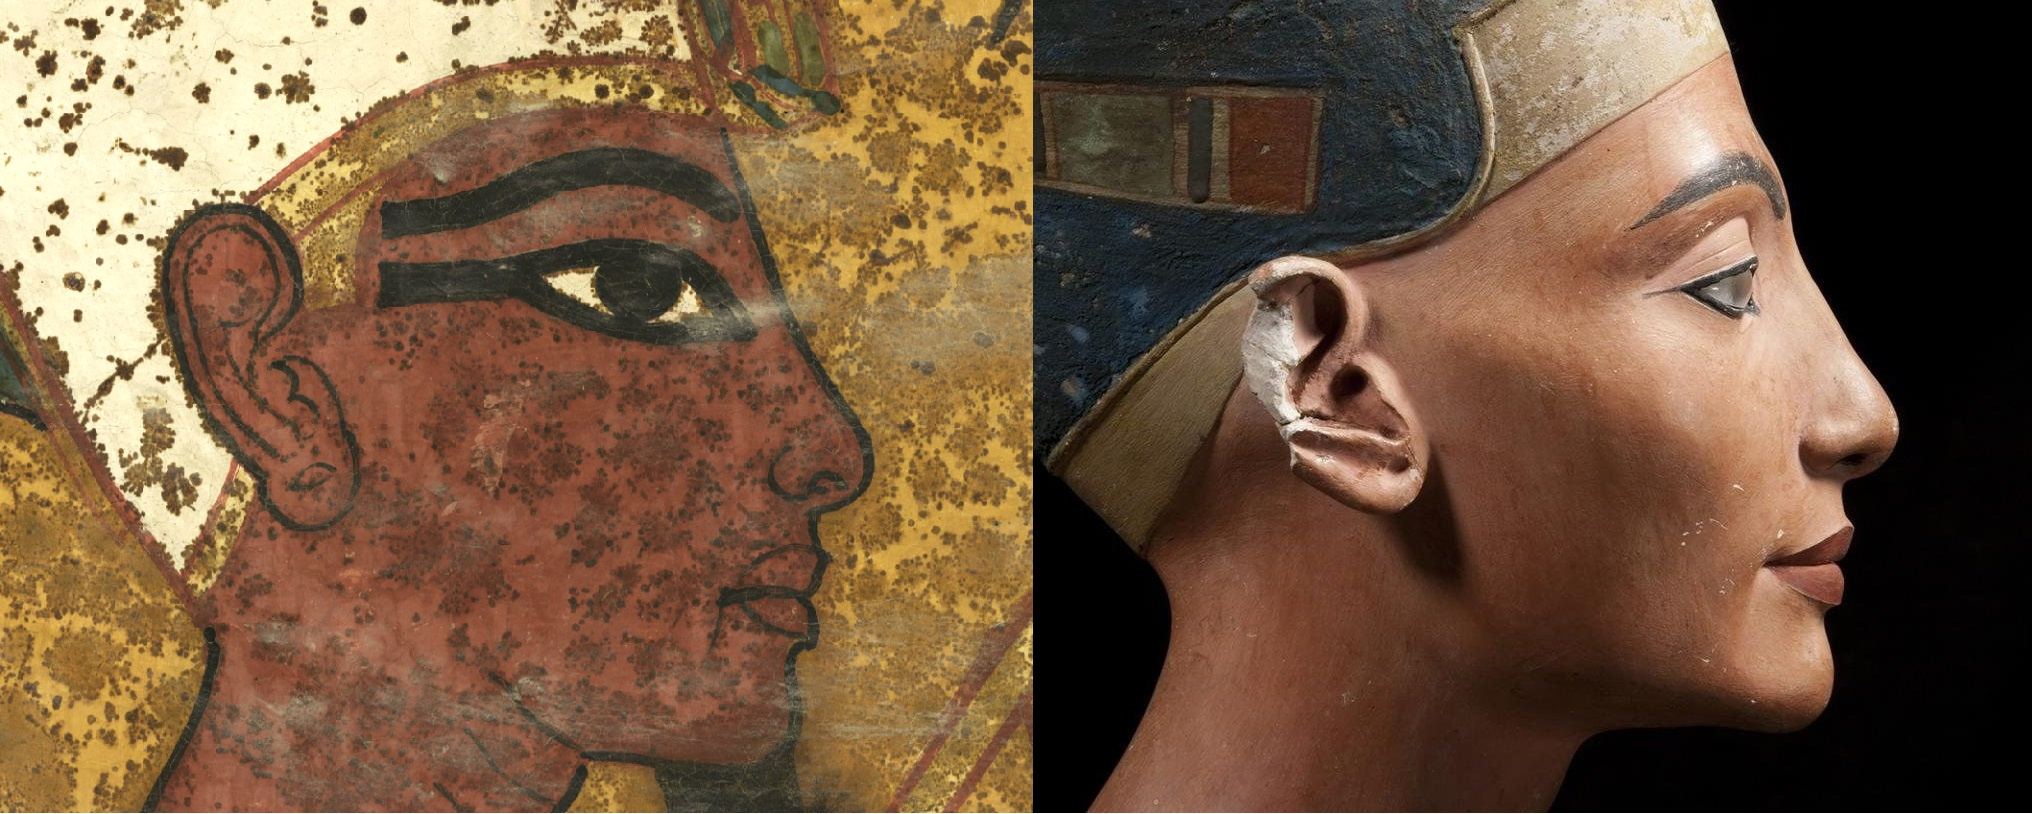 Nicholas Reeves believes that stylistically, the scenes painted on the northern wall of the tomb actually represents Tutankhamun completing the funerary ritual for Queen Nefertiti, his predecessor. Conventional thinking says that the painting shows King Ay doing the rituals for Tutankhamun. Comparing images of 'Tutankhamun', Reeves noticed how the jawline, brow, nose, chin and the distinctive 'oromental groove' running down from the corner of her mouth, unique to Nefertiti, all point to this pharaoh actually being the famous queen.